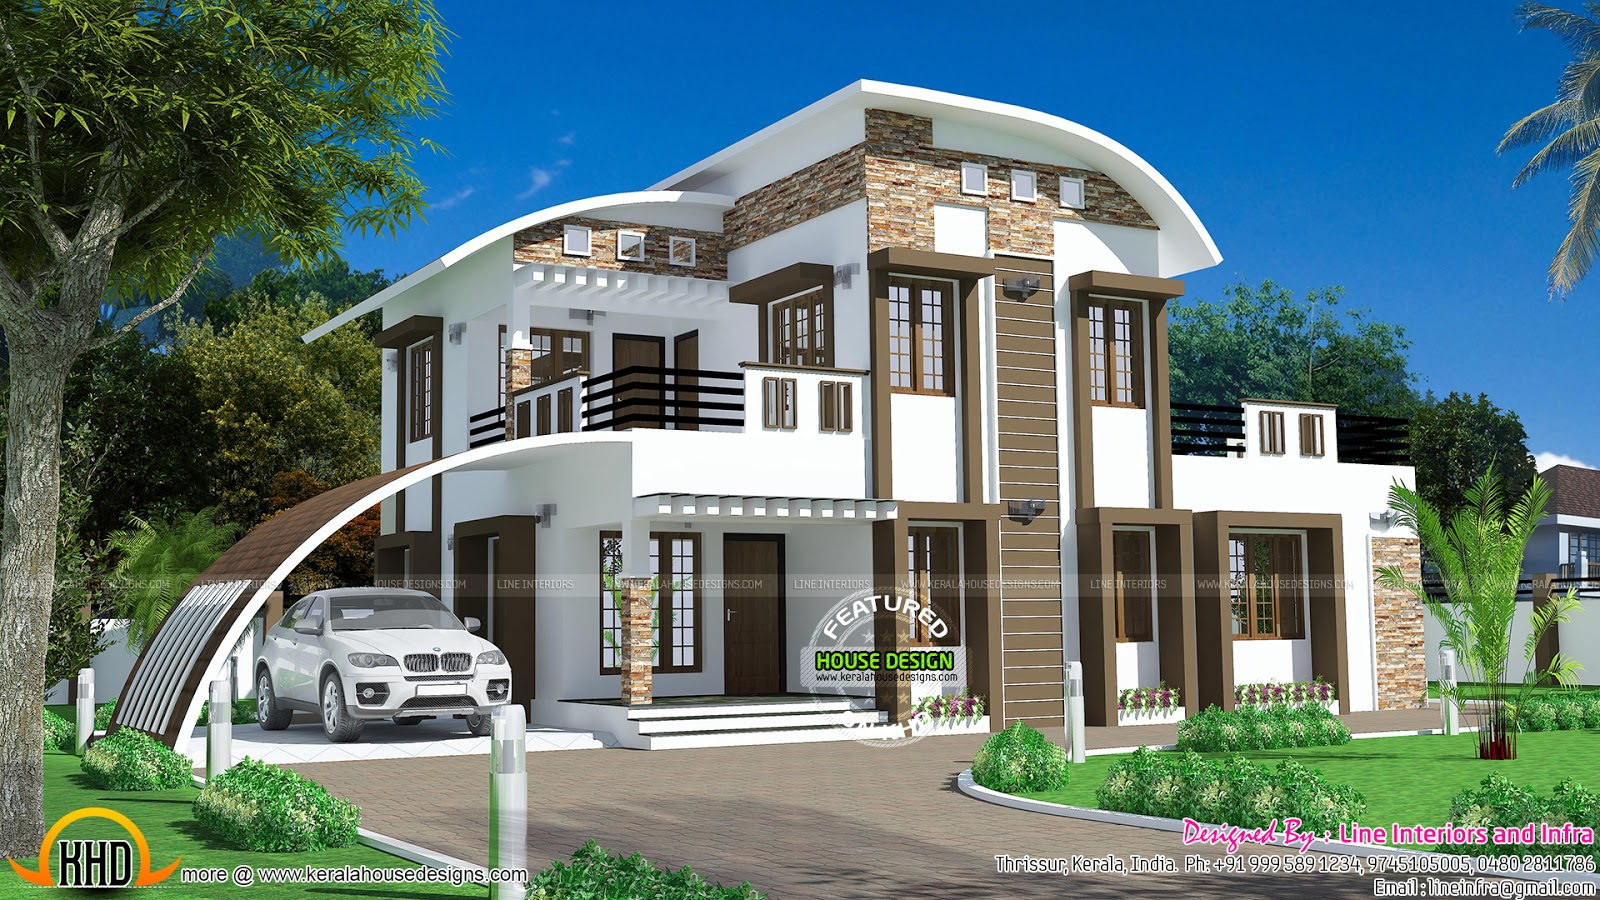 House curved roof style kerala home design and floor plans for House design styles